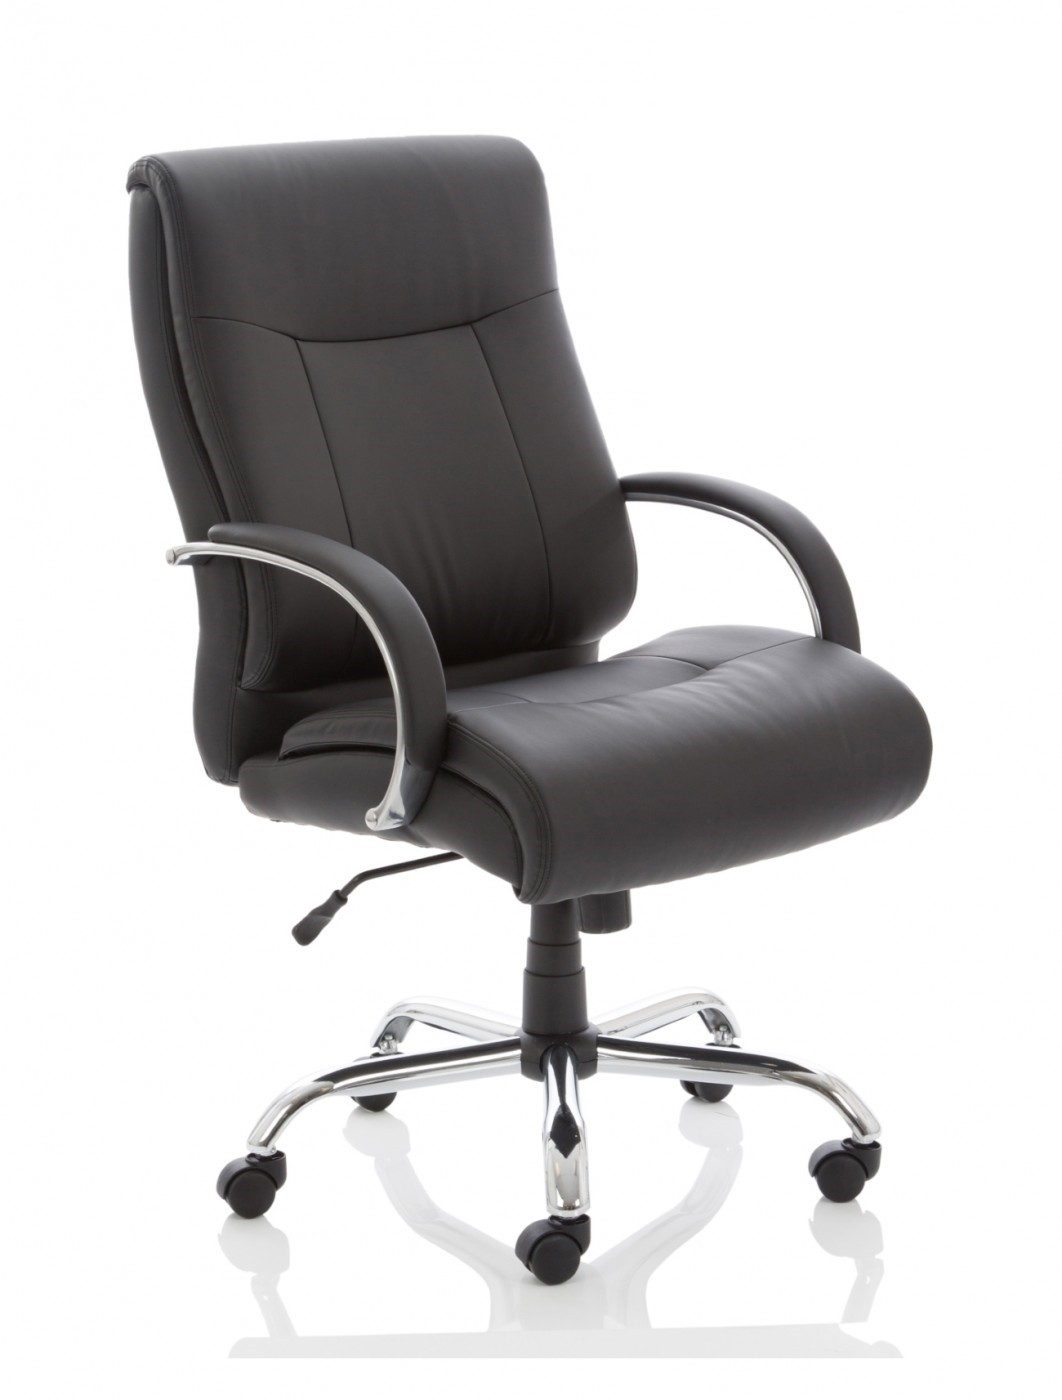 Office Chairs - Drayton HD Super Heavy Duty Executive Leather Office Chair  EX000191 - enlarged view